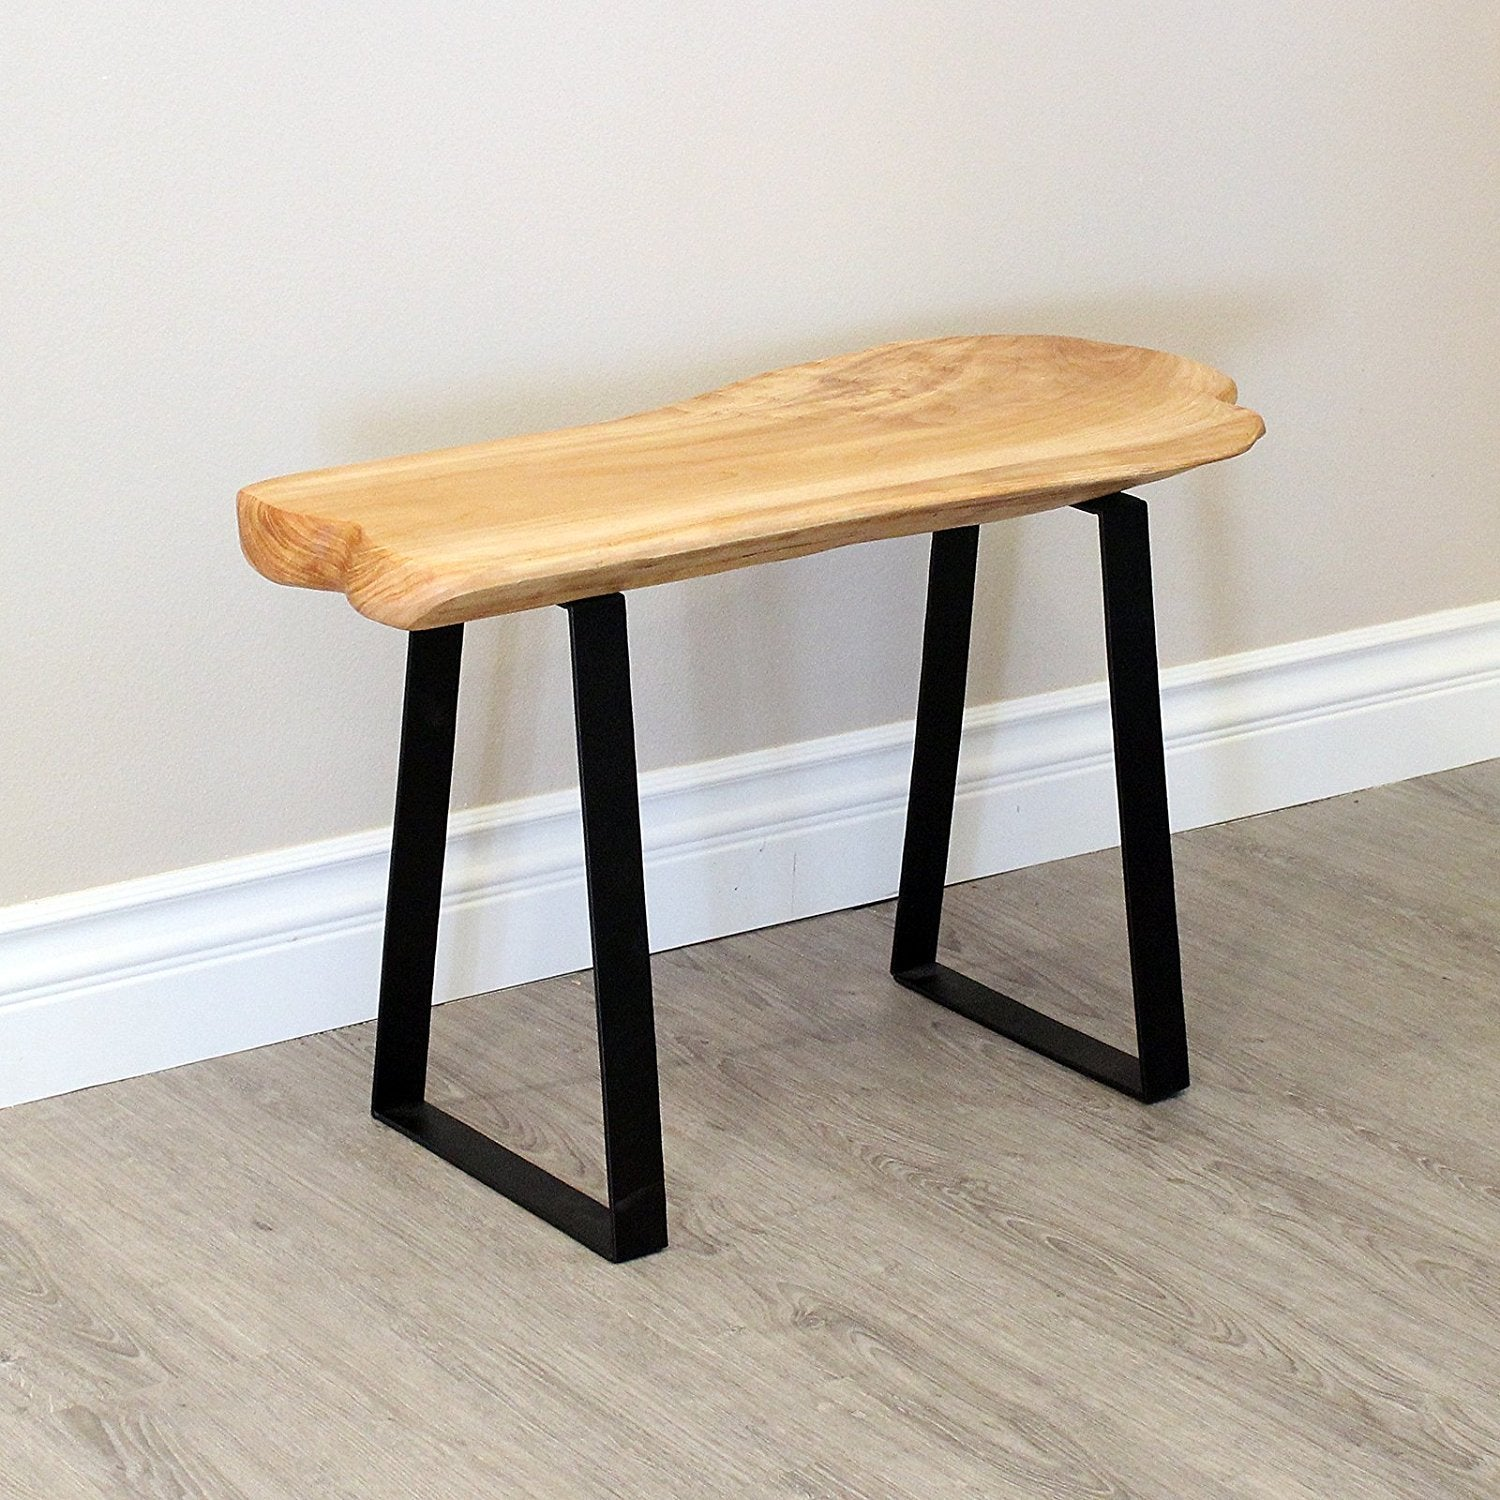 Wondrous Live Edge Cedar Wood Bench With Metal Legs 29 Long Caraccident5 Cool Chair Designs And Ideas Caraccident5Info